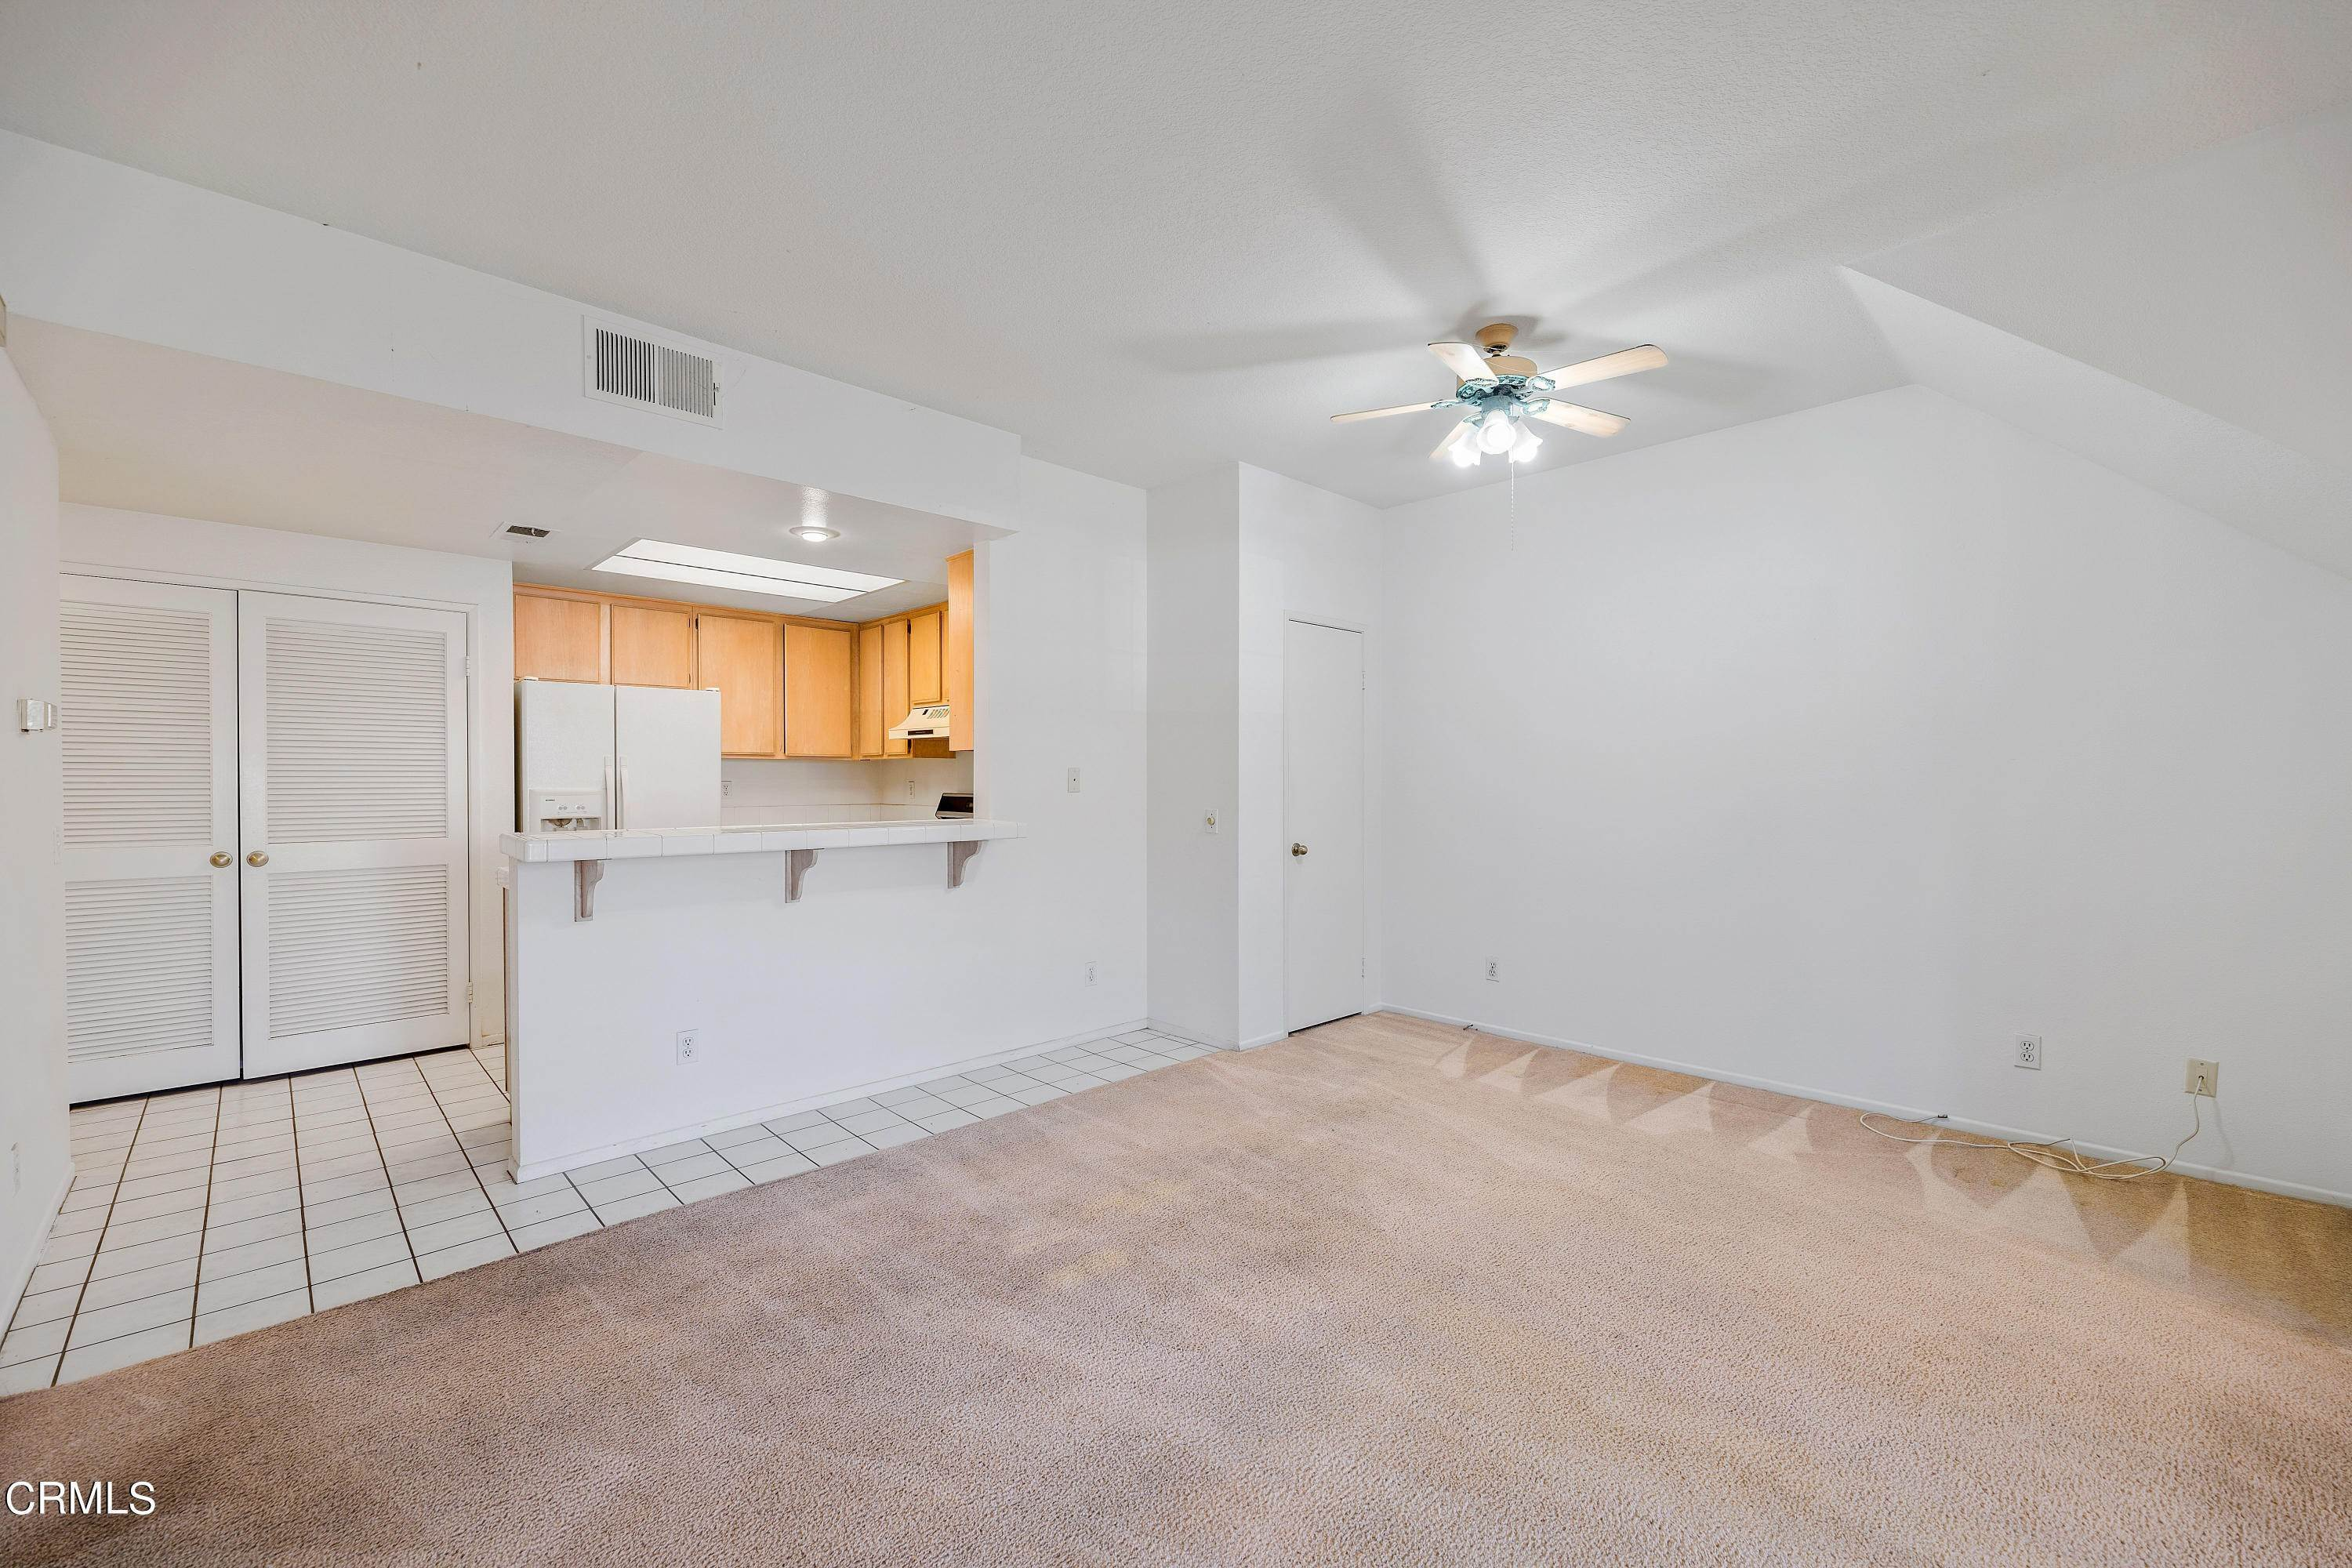 5. Condominiums for Sale at 2069 Blackberry Circle Oxnard, California 93036 United States